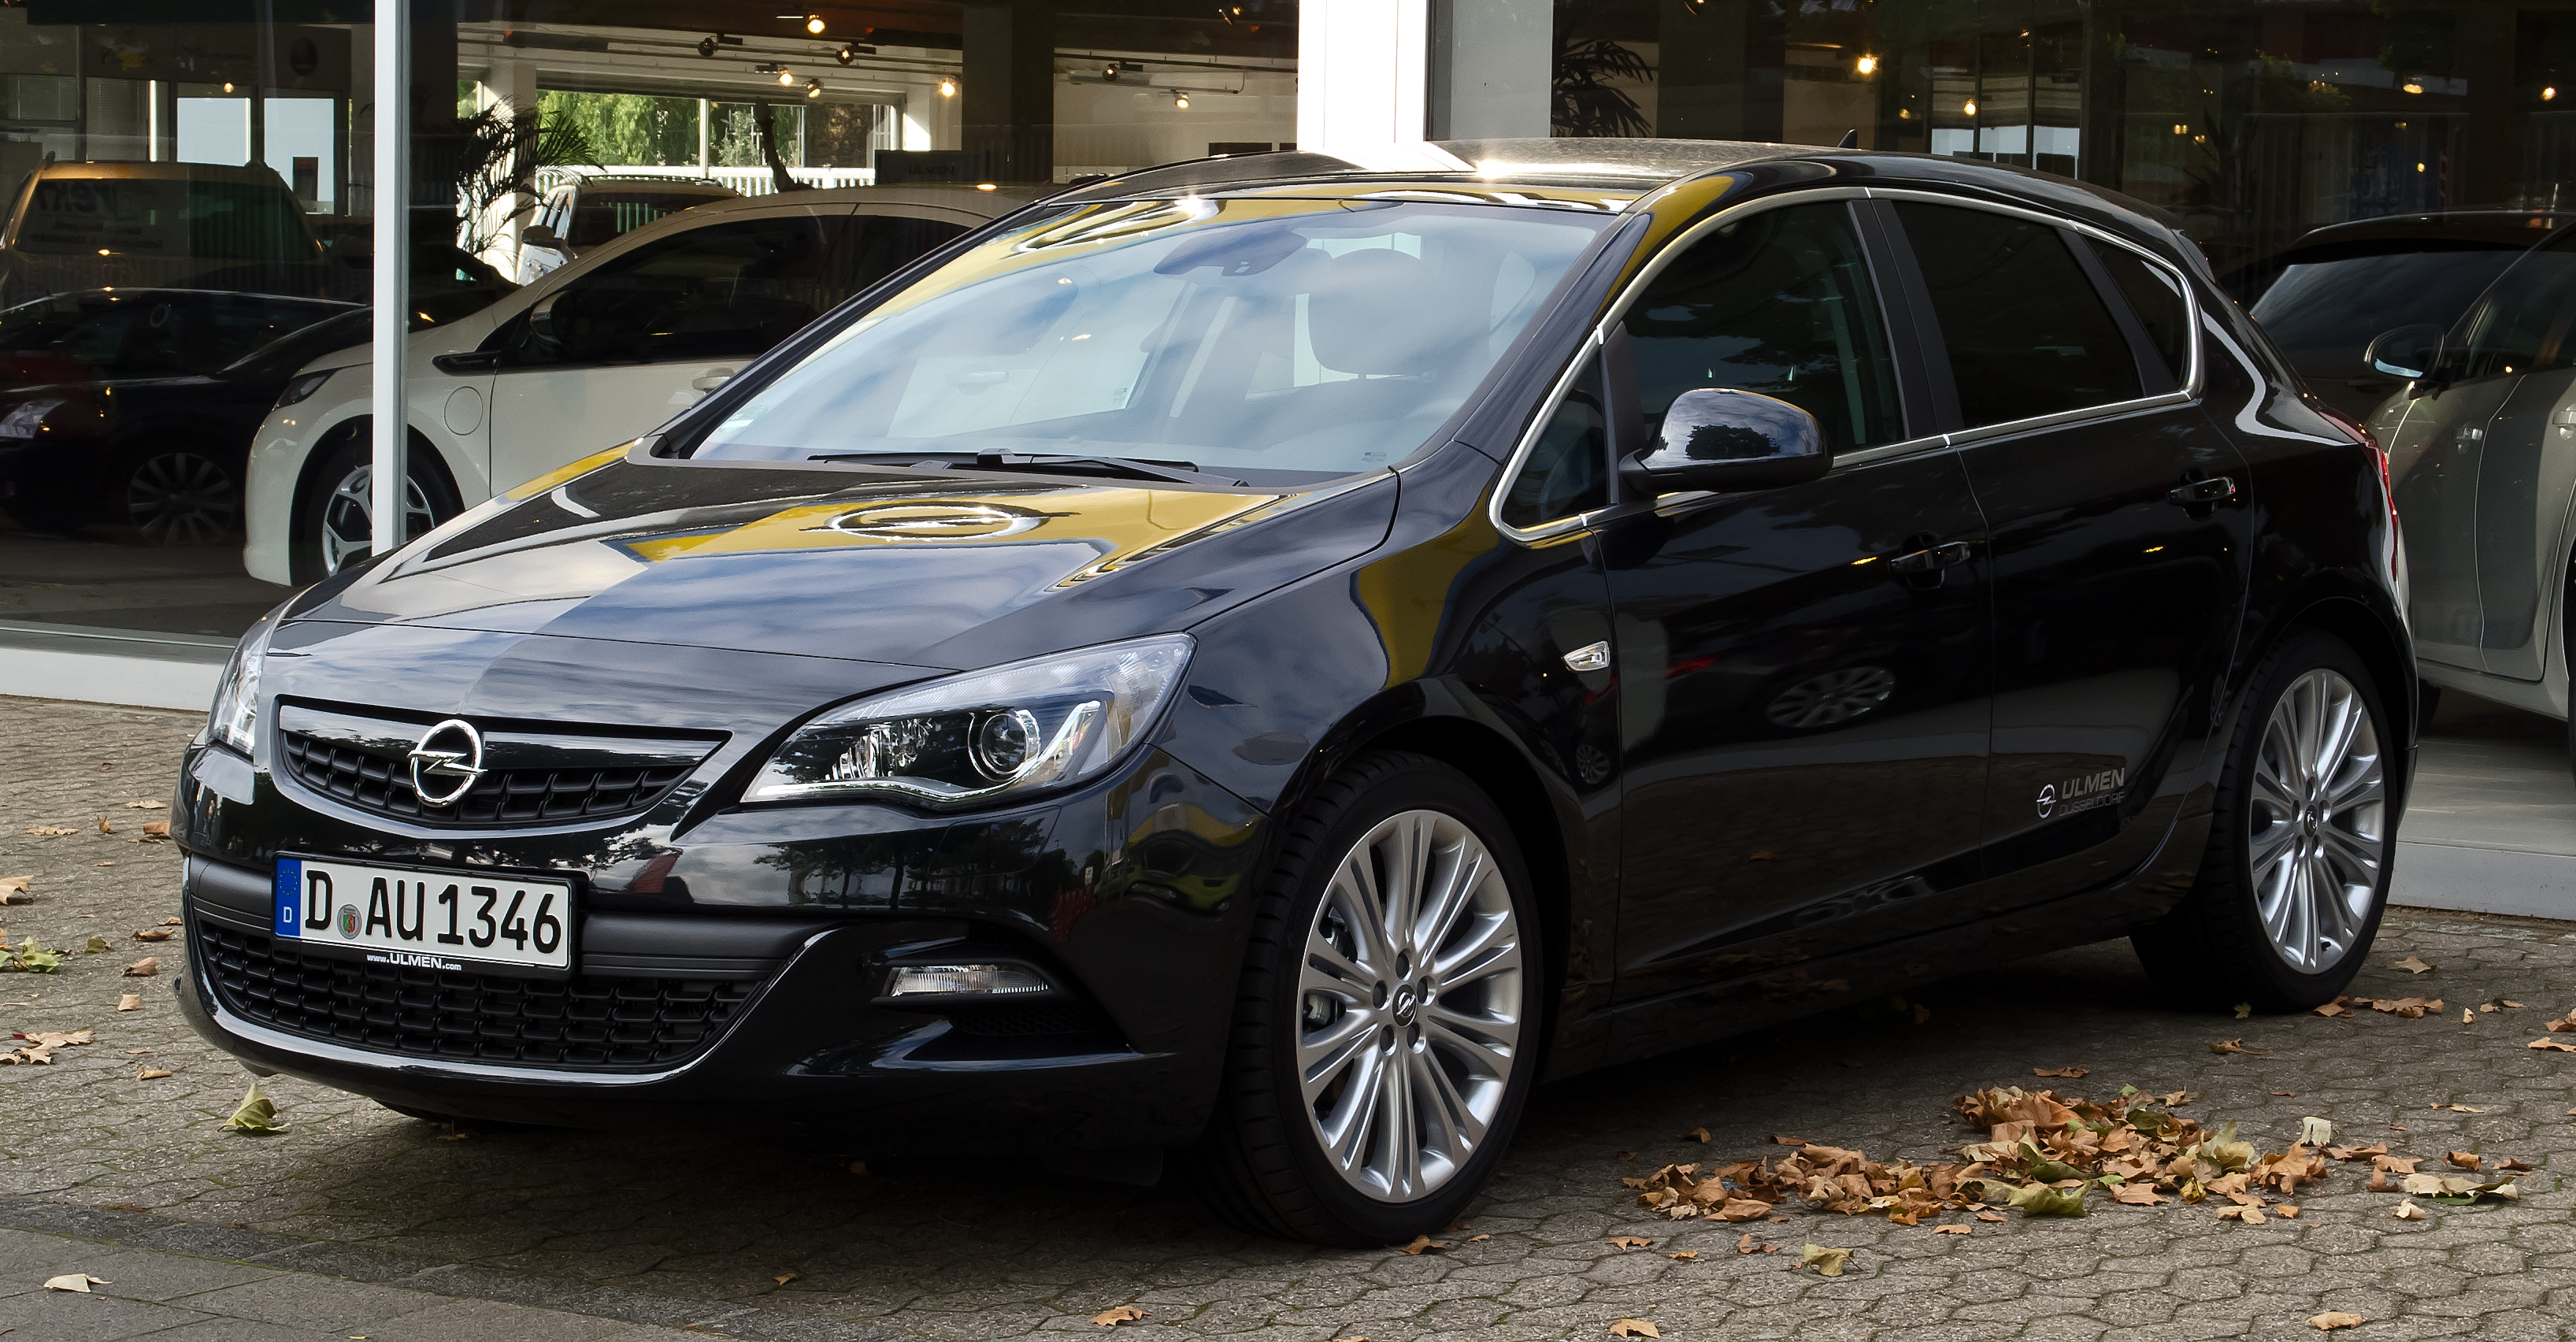 2012 opel astra j pictures information and specs auto. Black Bedroom Furniture Sets. Home Design Ideas